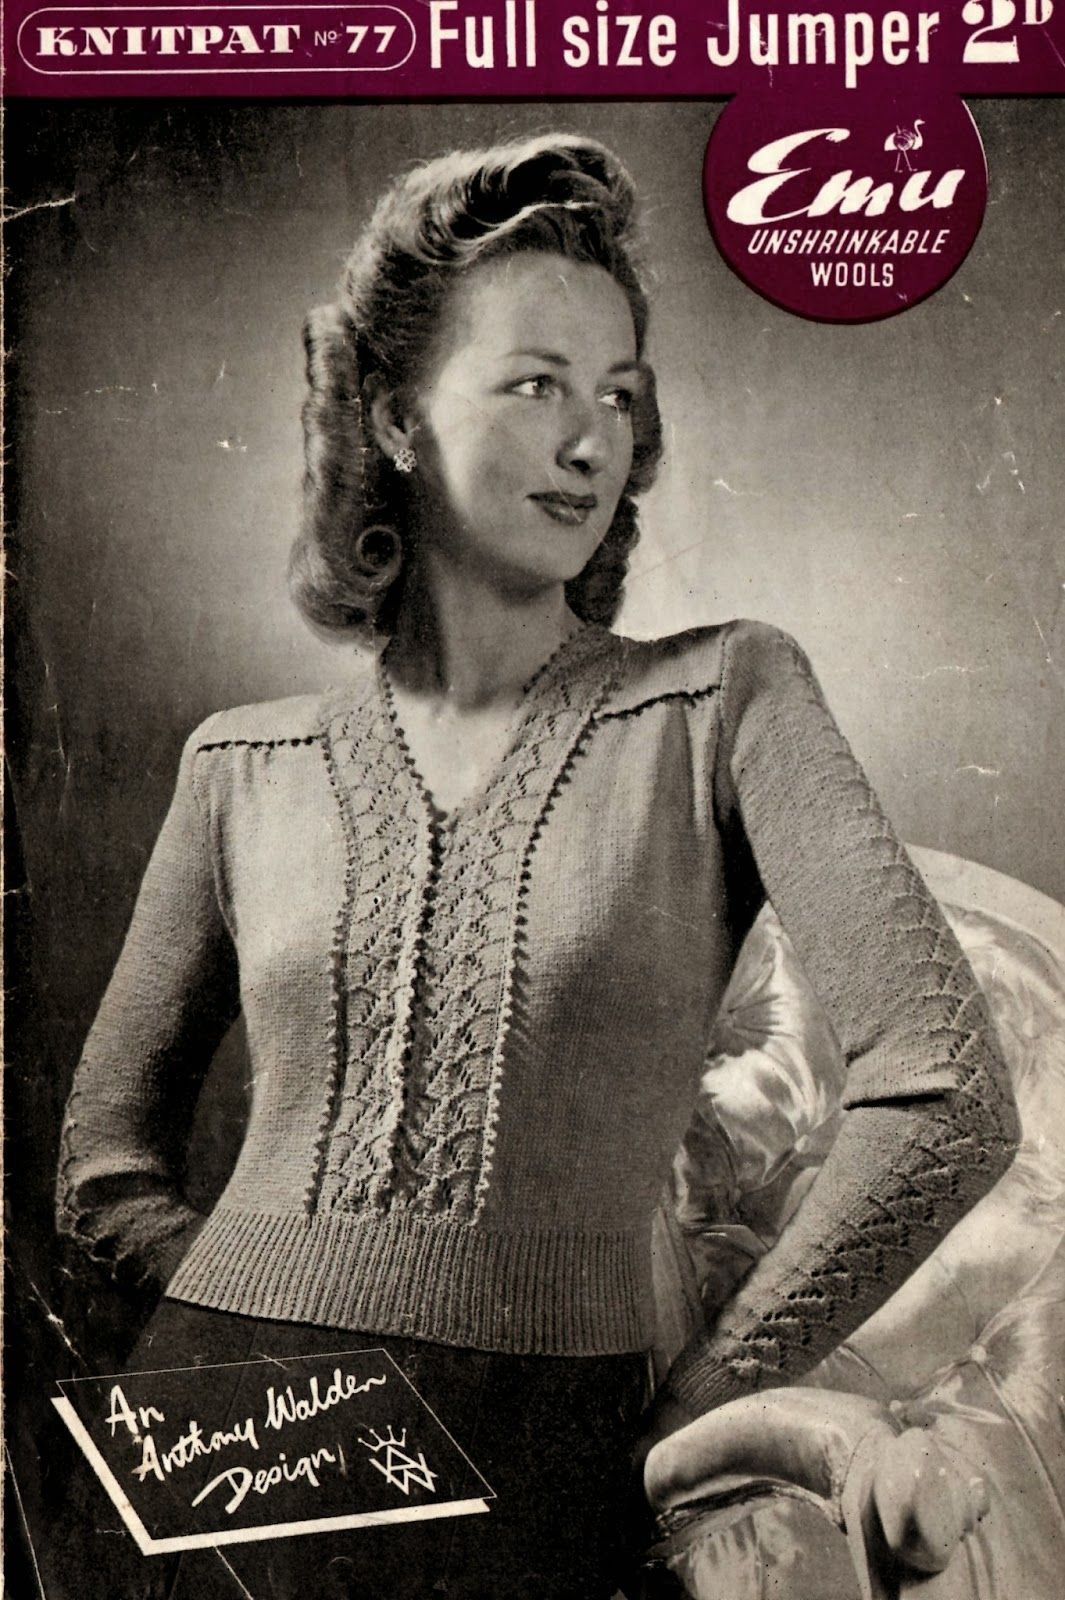 1940s style for you free knitting pattern 1940s larger size 1940s style for you free knitting pattern 1940s larger size jumper knitpat 77 bankloansurffo Image collections